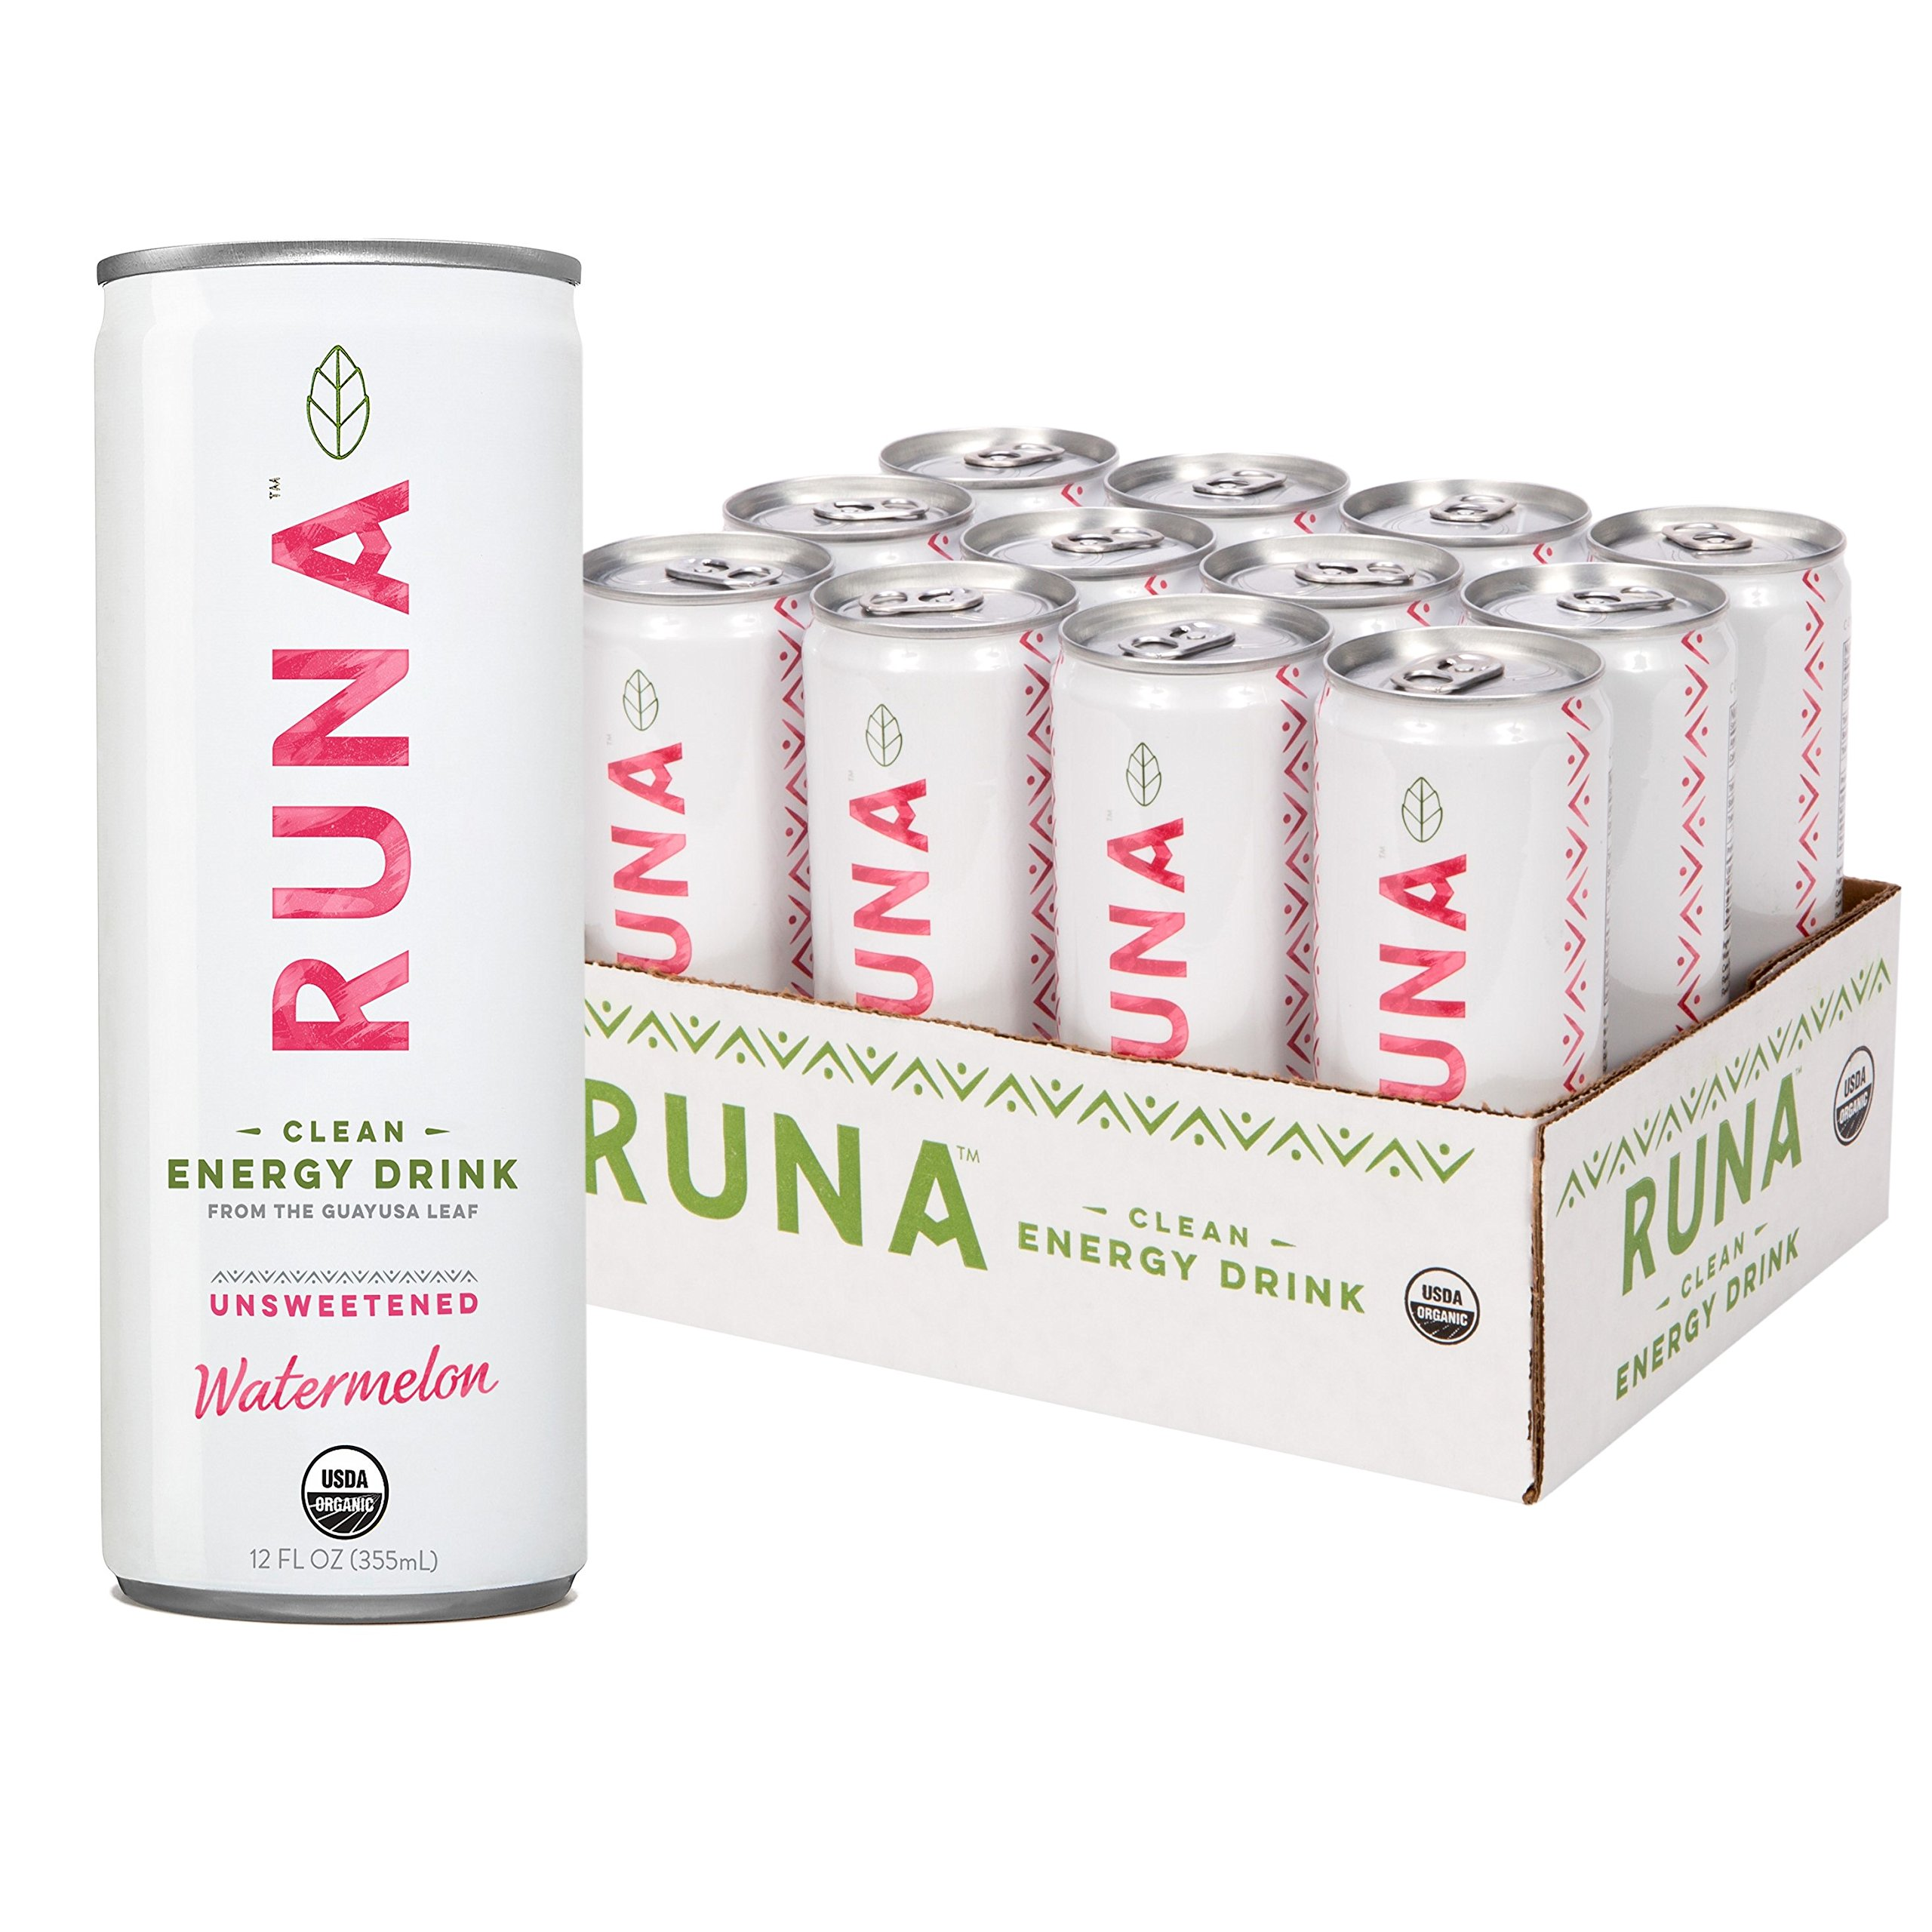 RUNA Organic Clean Energy Drink from the Guayusa Leaf, Unsweetened Watermelon, 12 Fluid Ounce (Pack of 12)